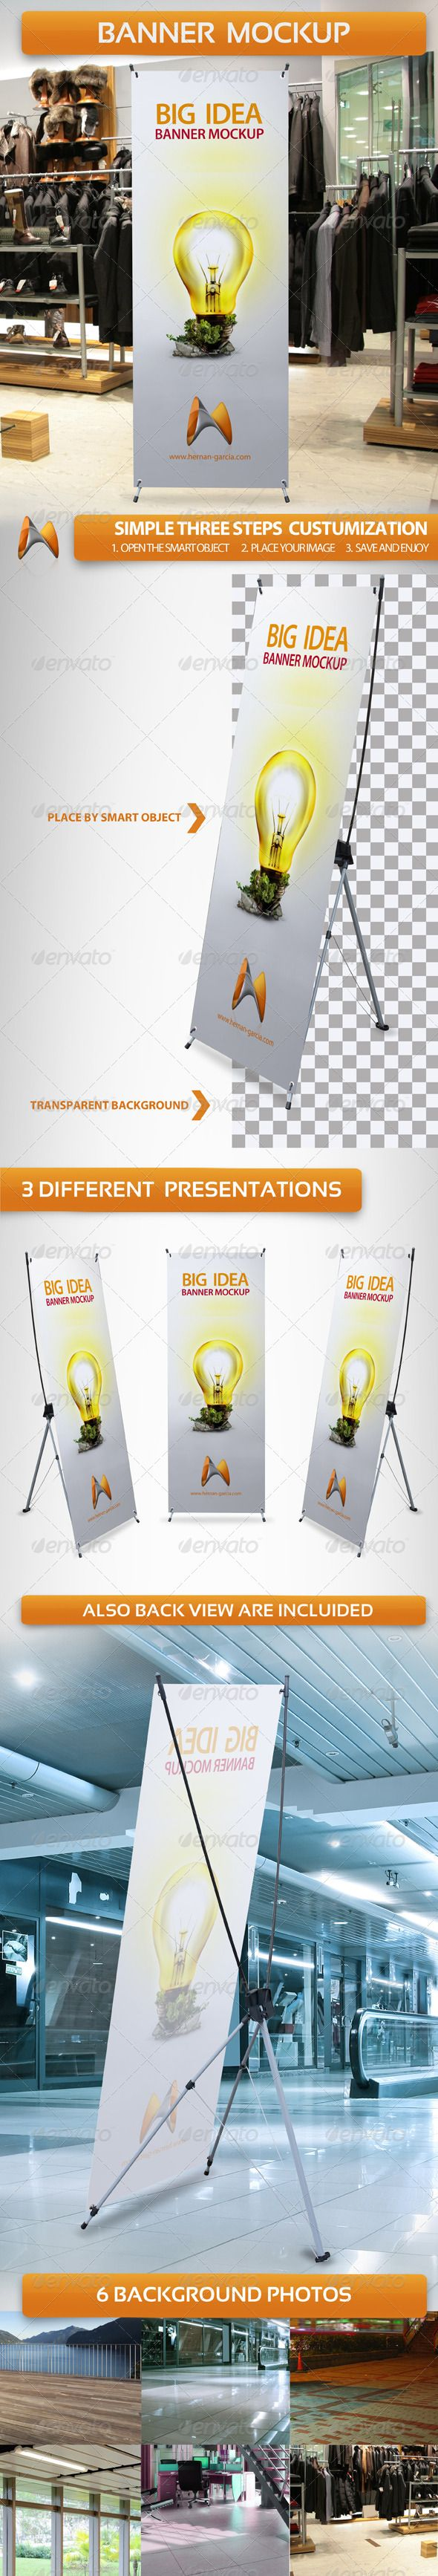 Free Pop Up Exhibition Stand Mockup : X banner mockup graphicriver this mock up helps you to